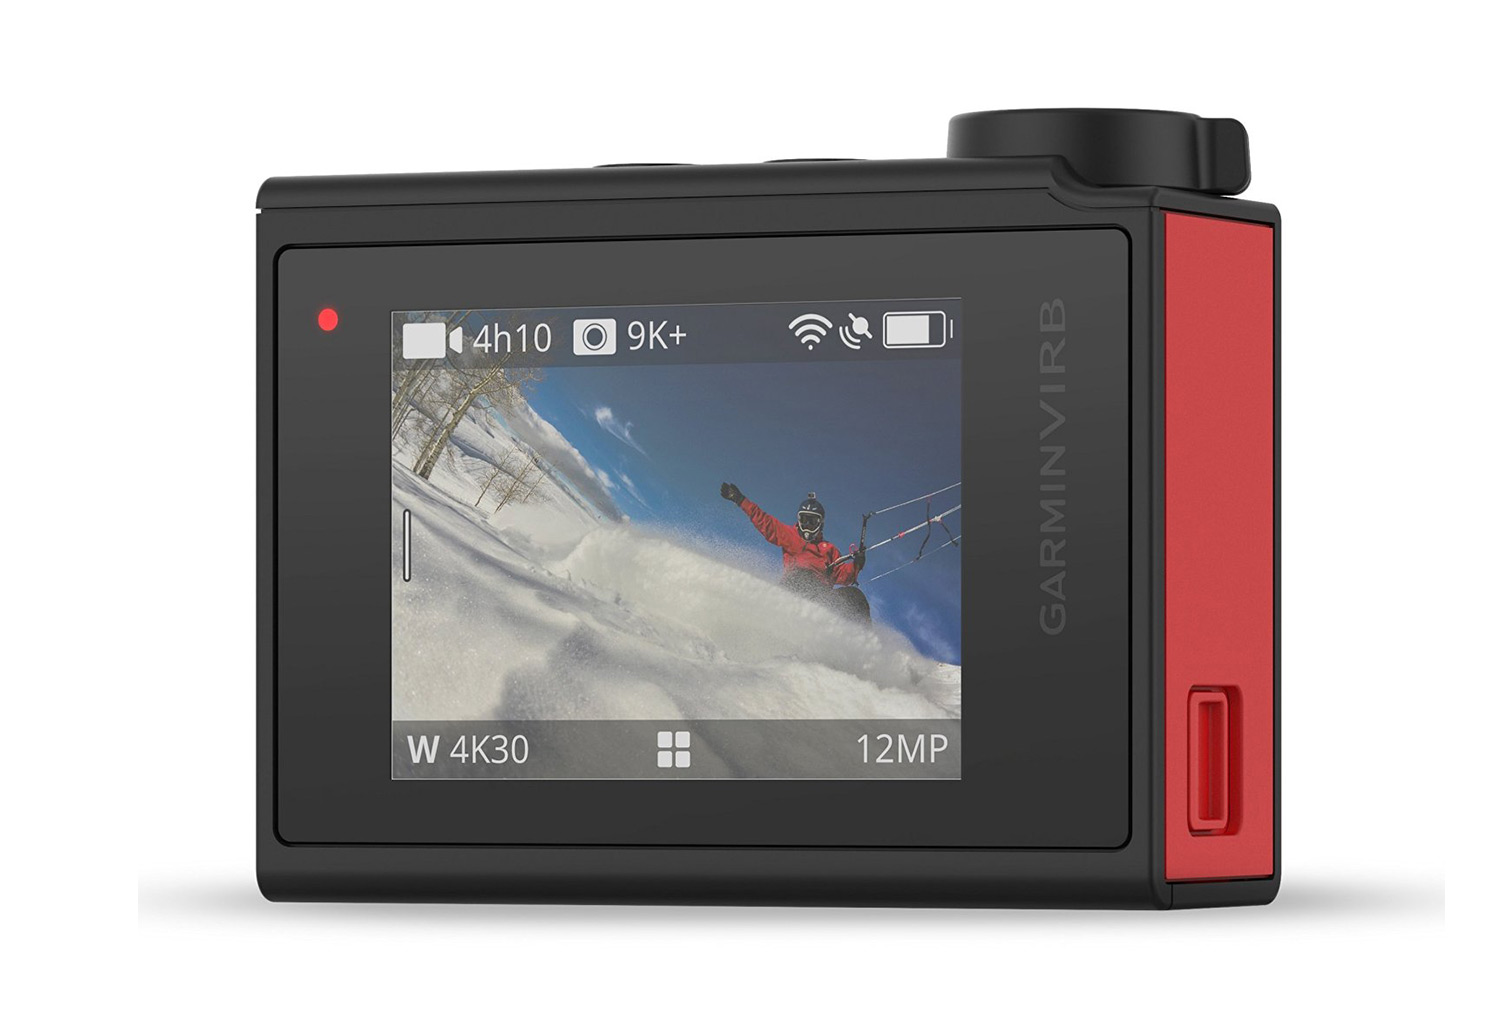 garmin virb ultra 30 action camera with gps europe. Black Bedroom Furniture Sets. Home Design Ideas